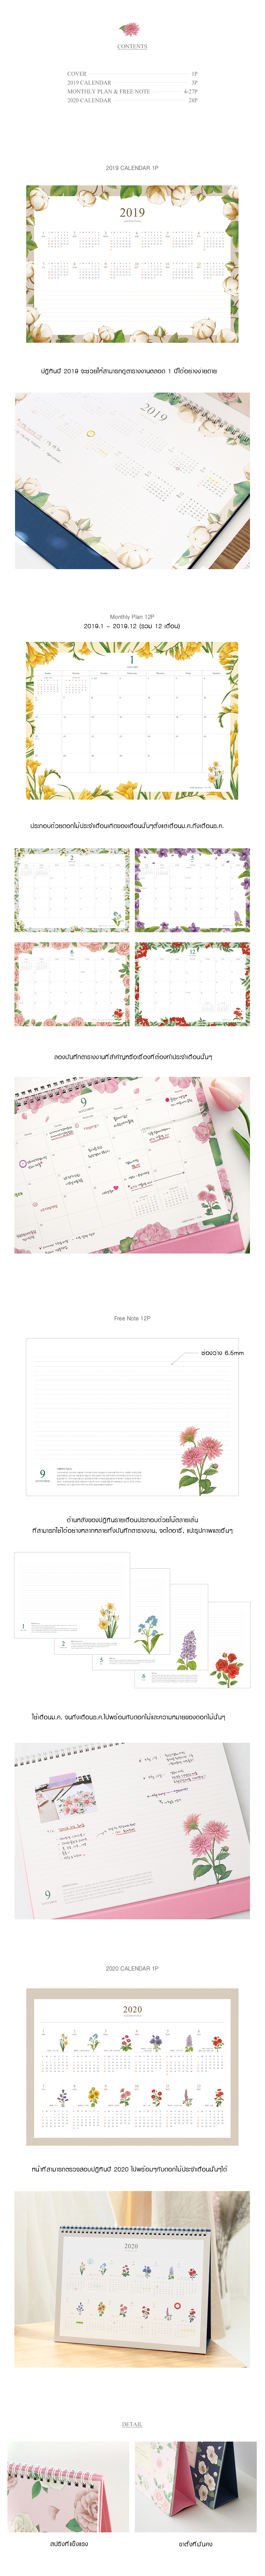 2019-birth-desk-scheduler-2.jpg